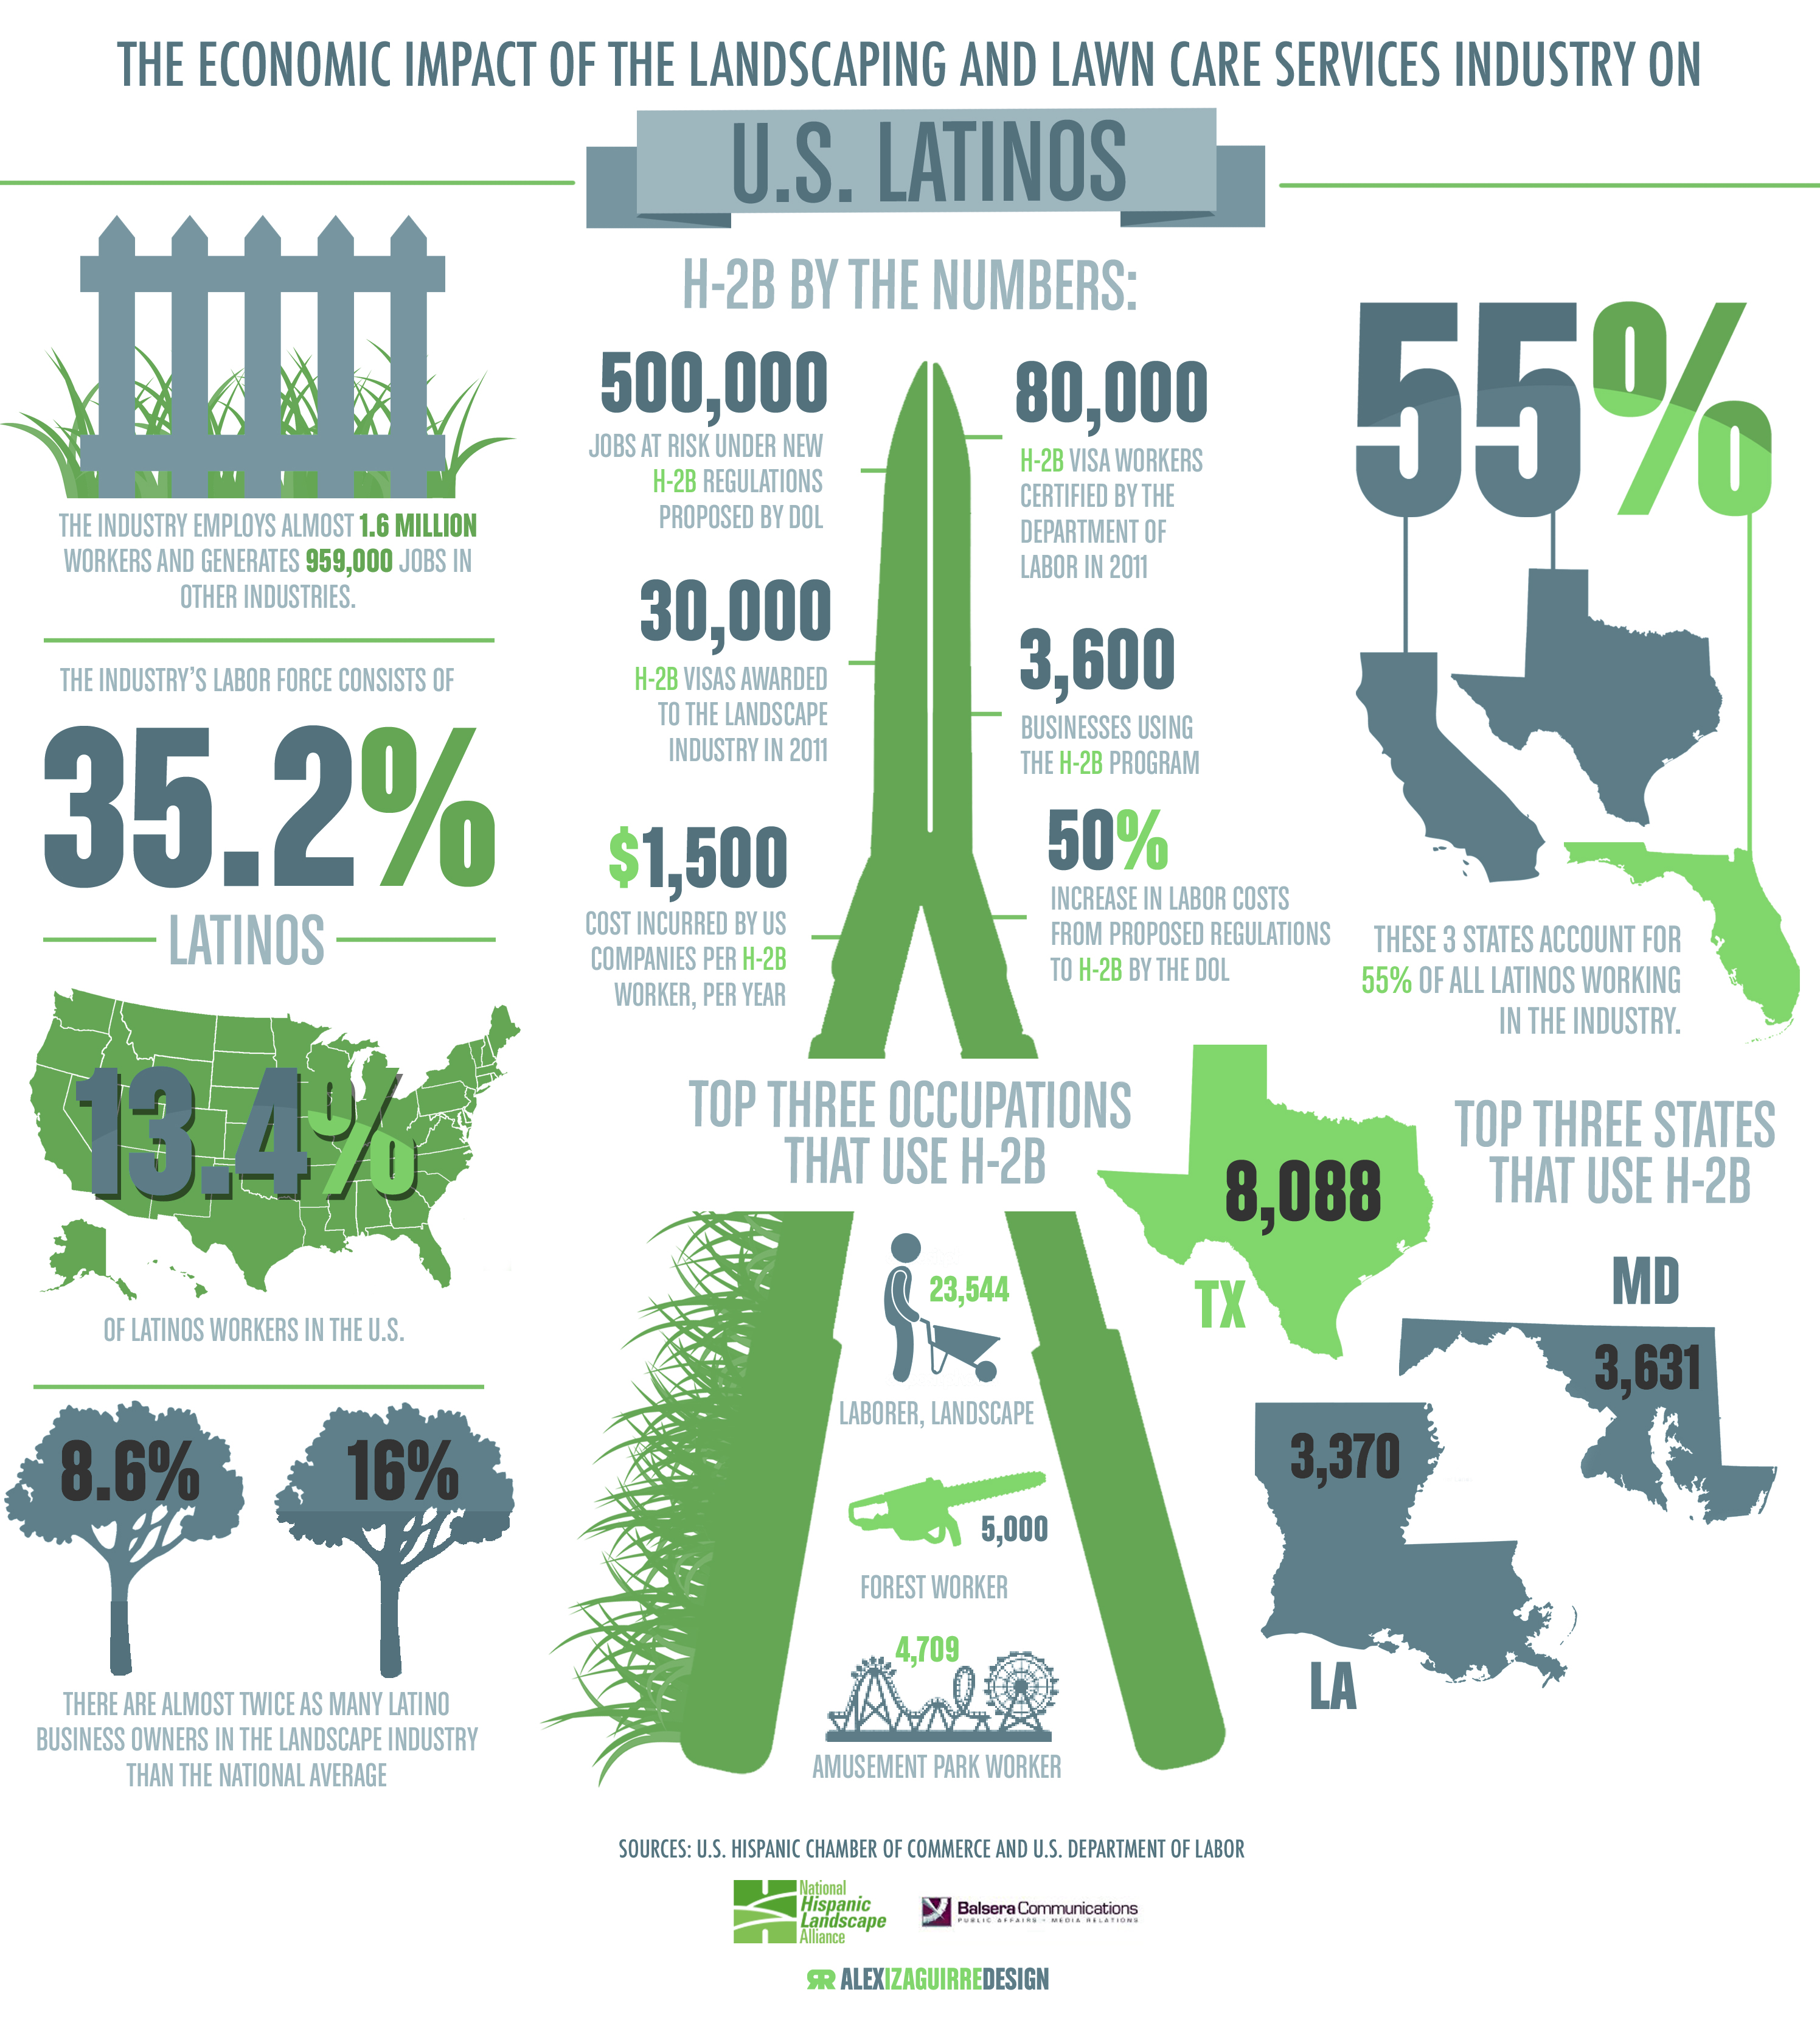 the-economic-impact-of-the-landscaping-and-lawncare-services-industry-on-latinos_50d2243198e87